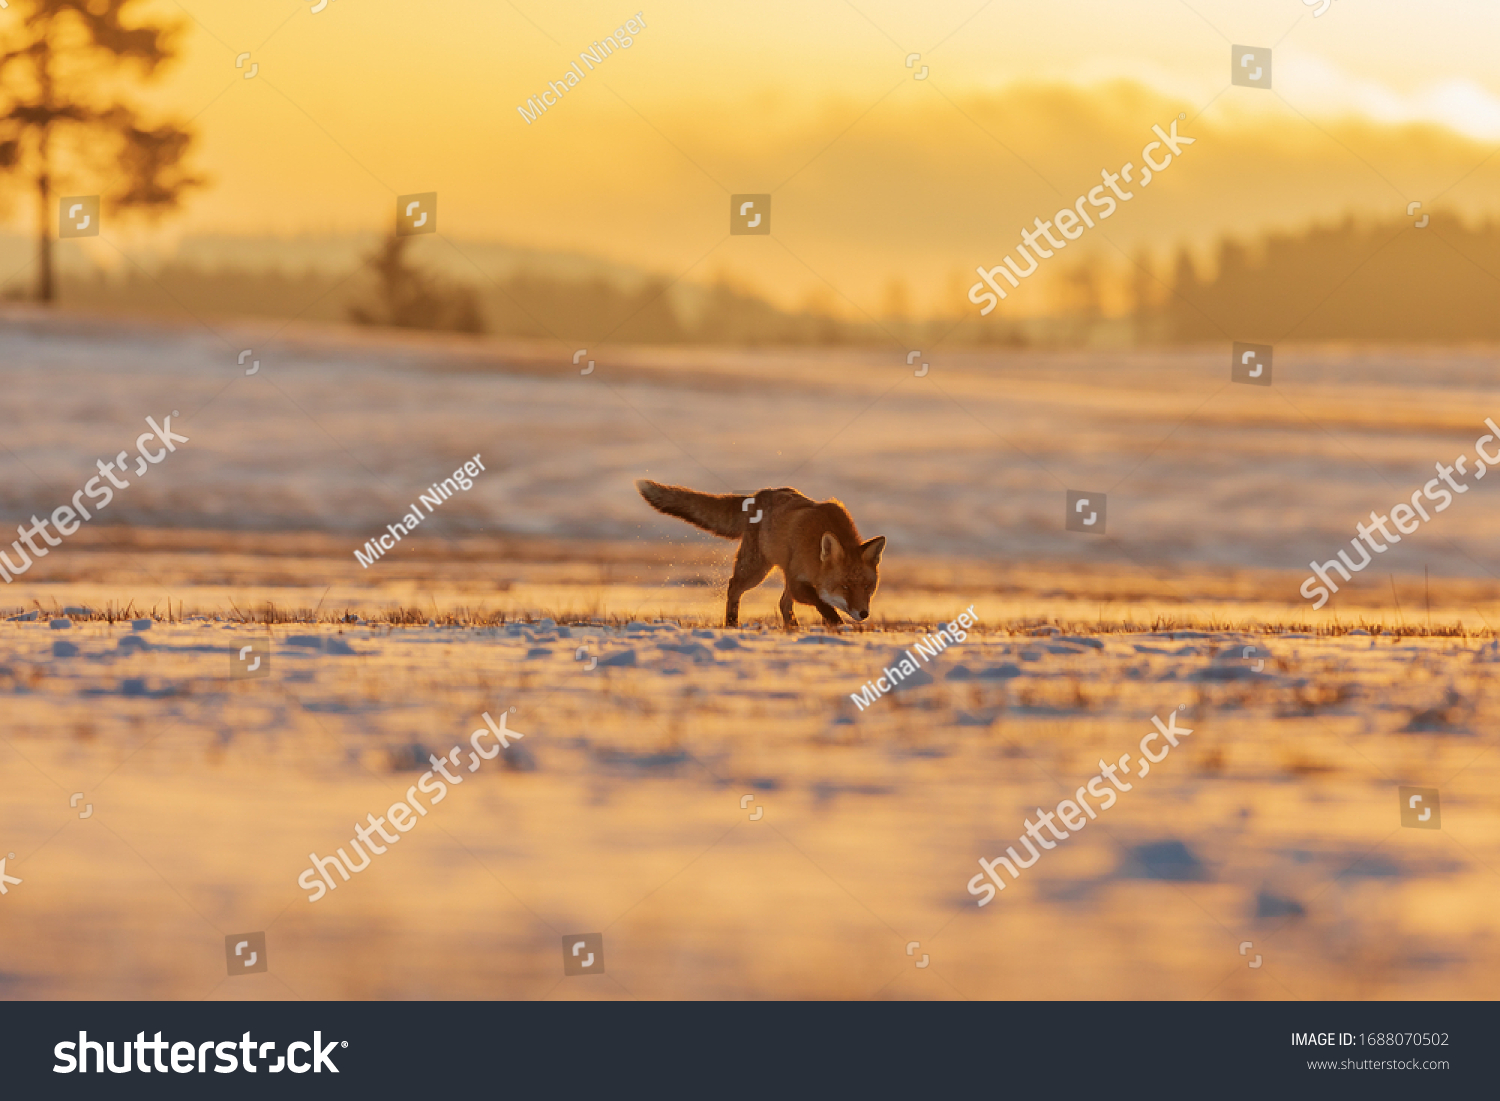 red fox (Vulpes vulpes) they sweep across a snow-covered field in a landscape encrusted with golden morning sun rays